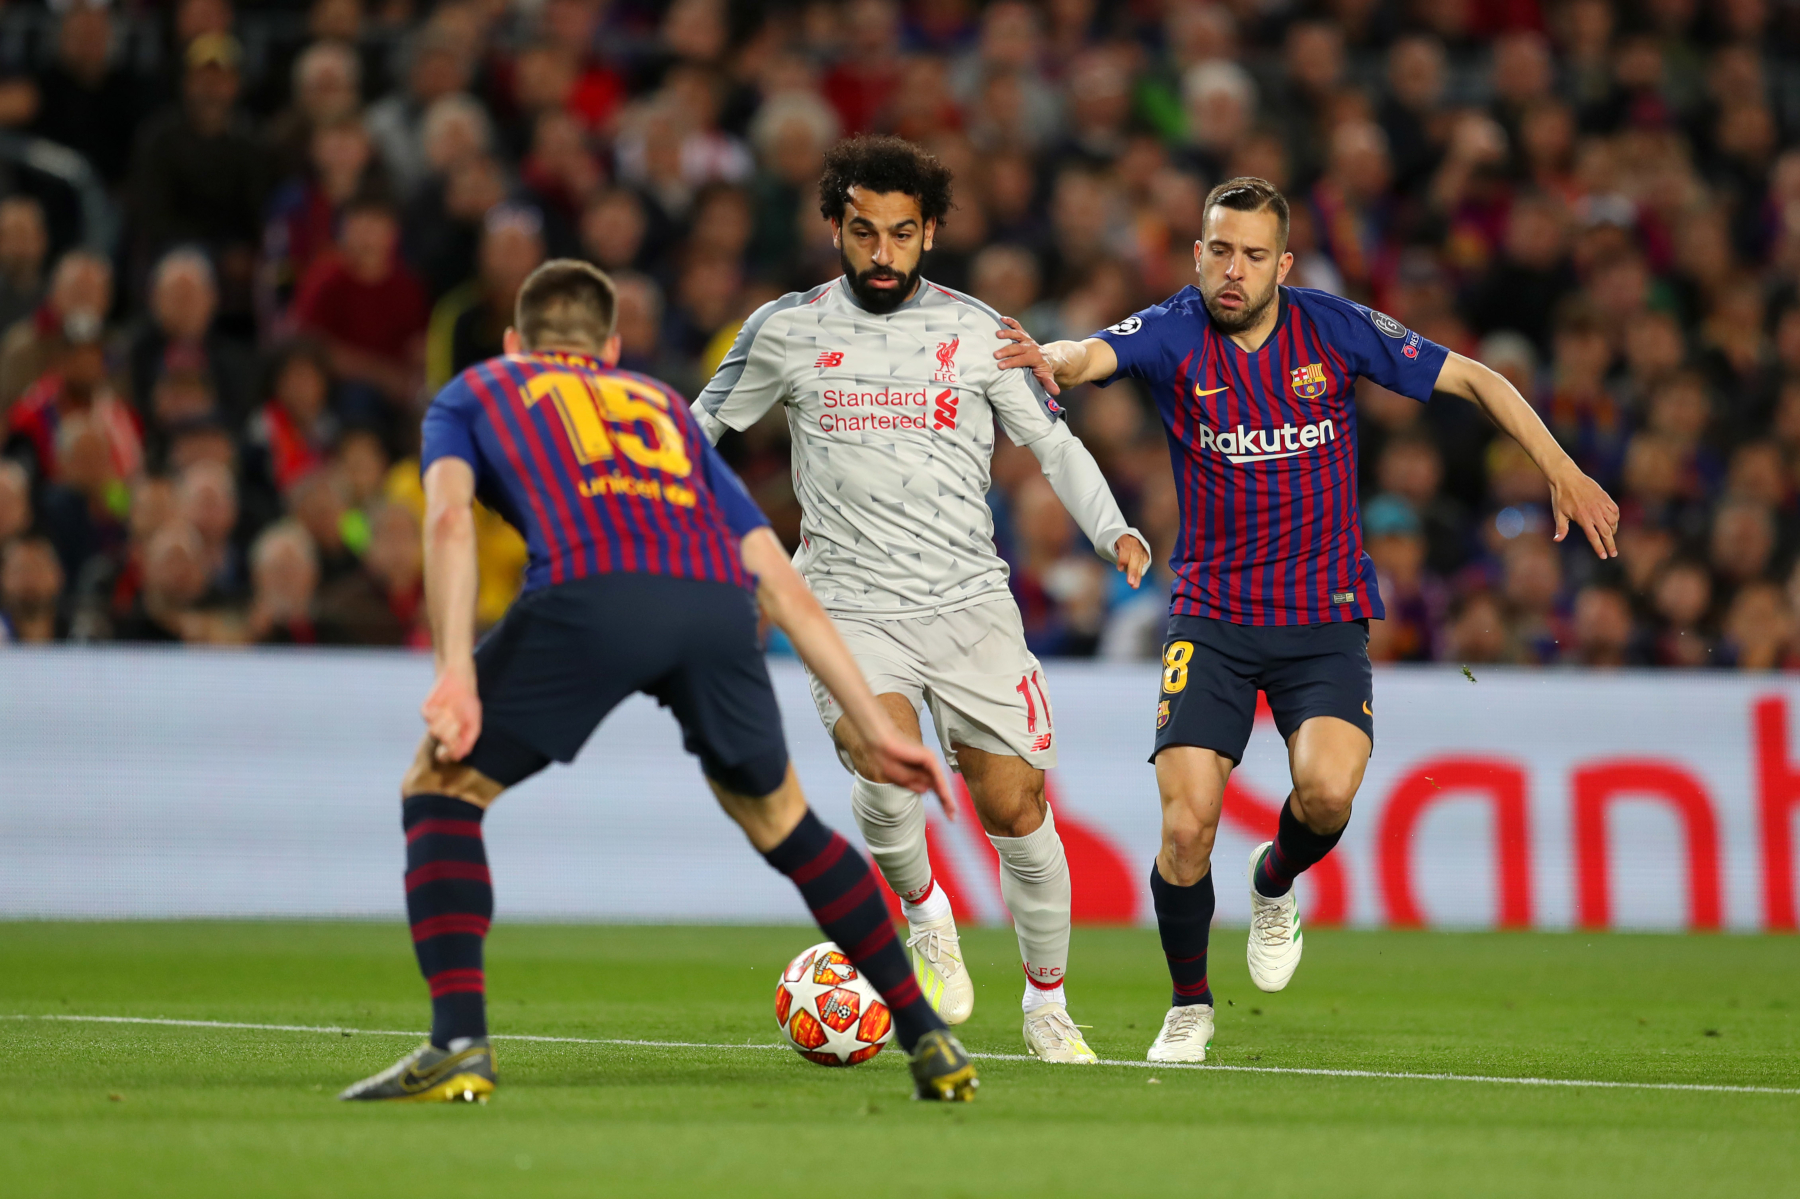 Liverpool's Van Dijk: Barcelona know Champions League tie not over